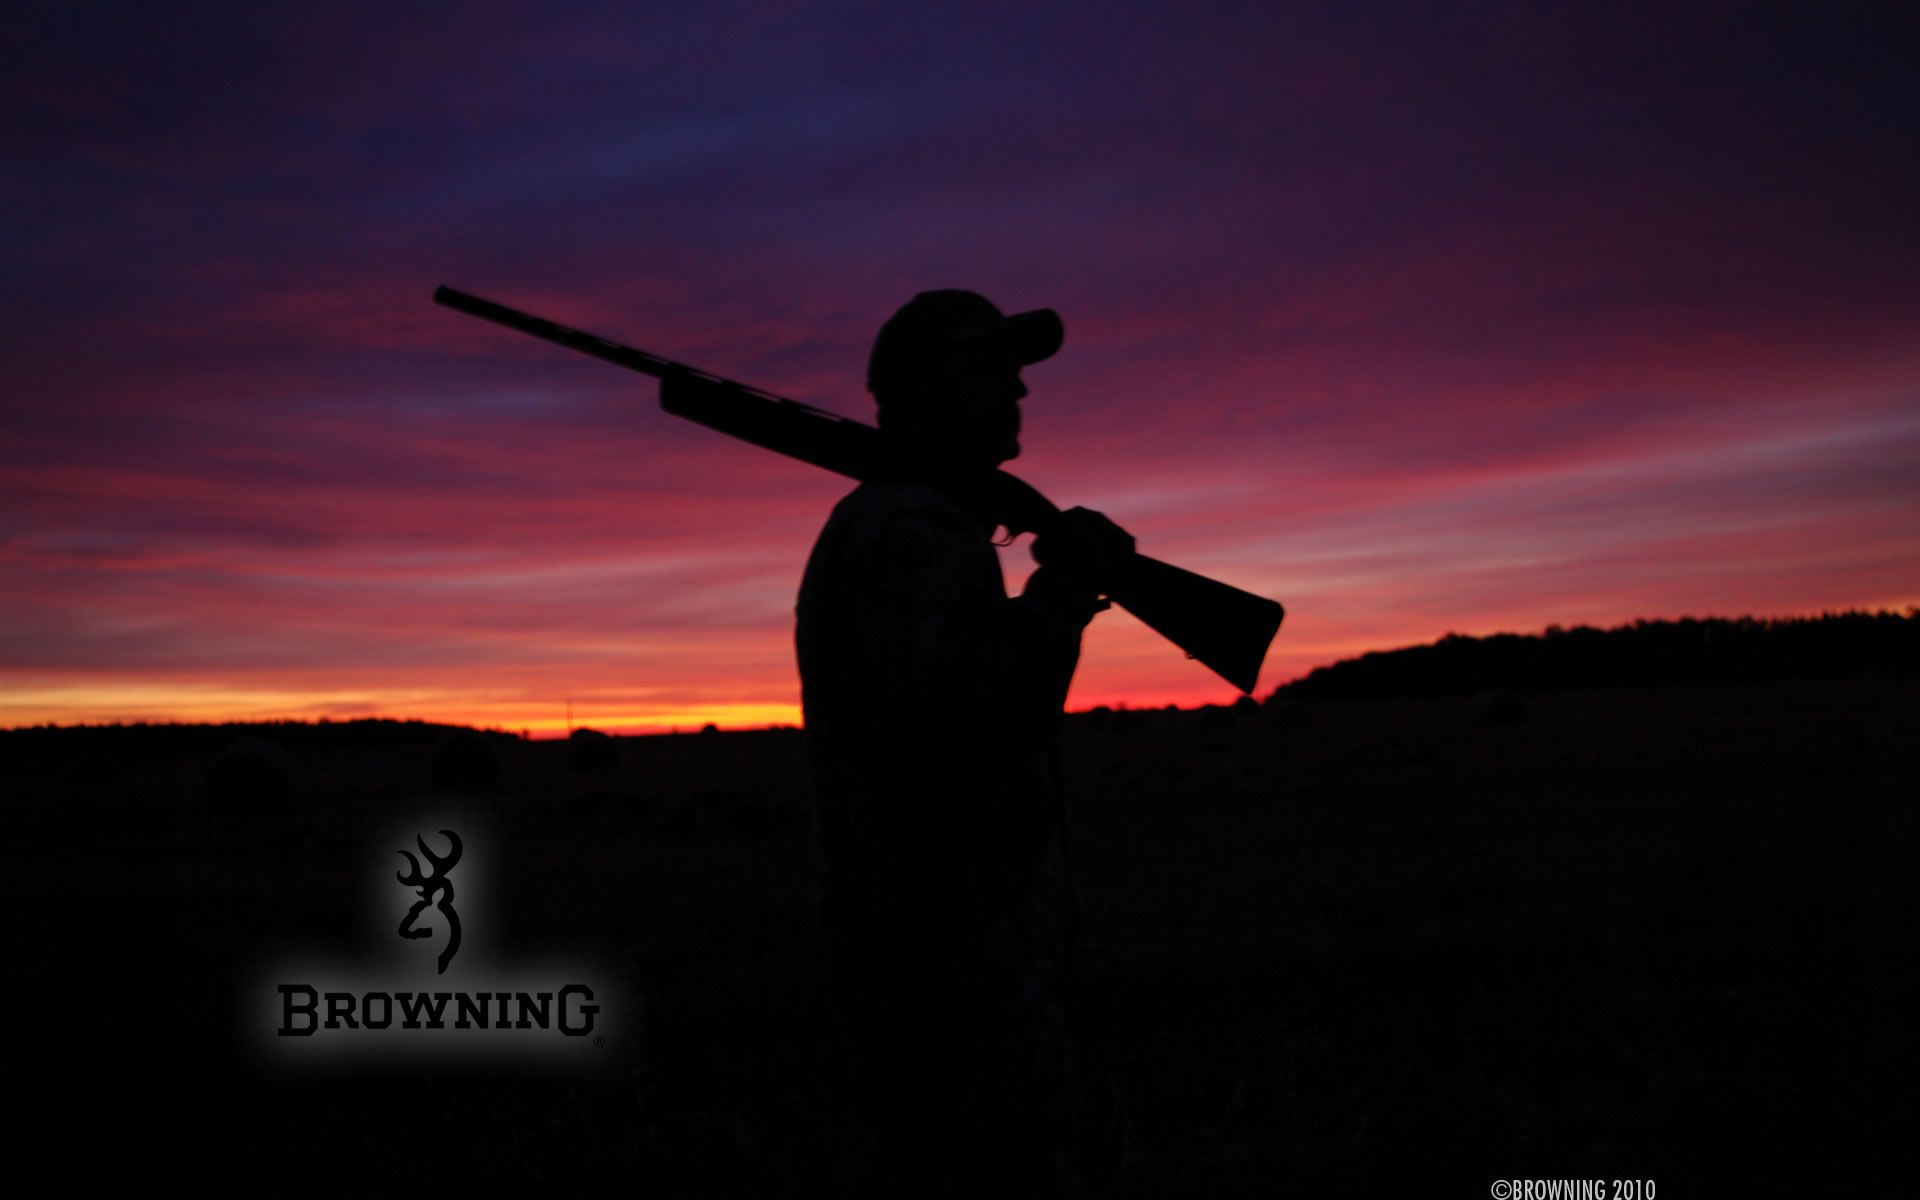 Wallpapers For Browning Logo Wallpaper For Iphone 1920x1200